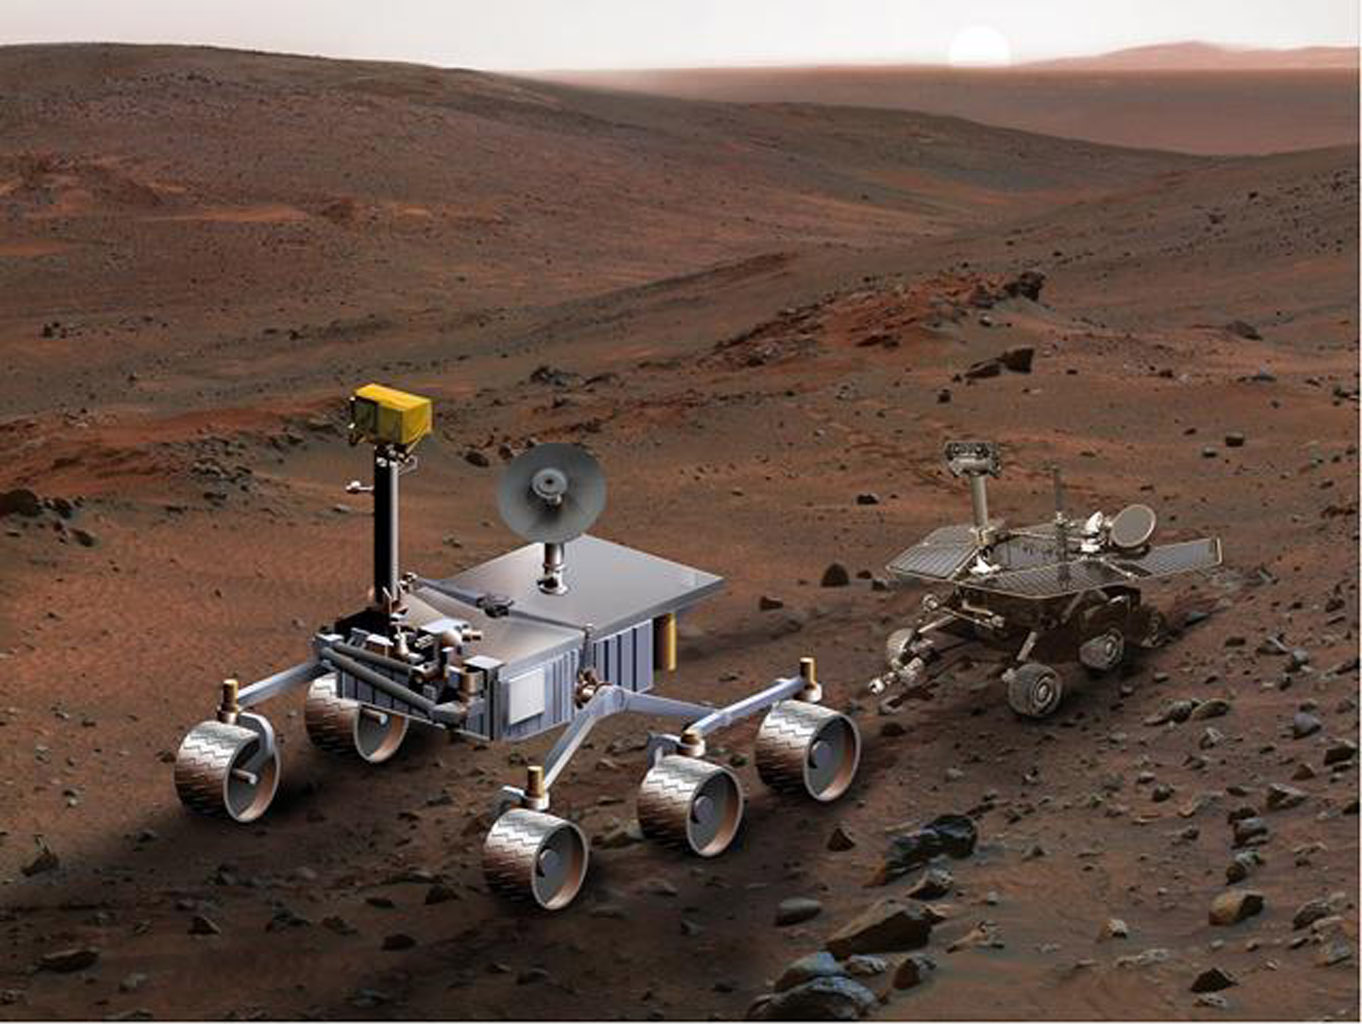 mars exploration rover spirit facts - photo #32